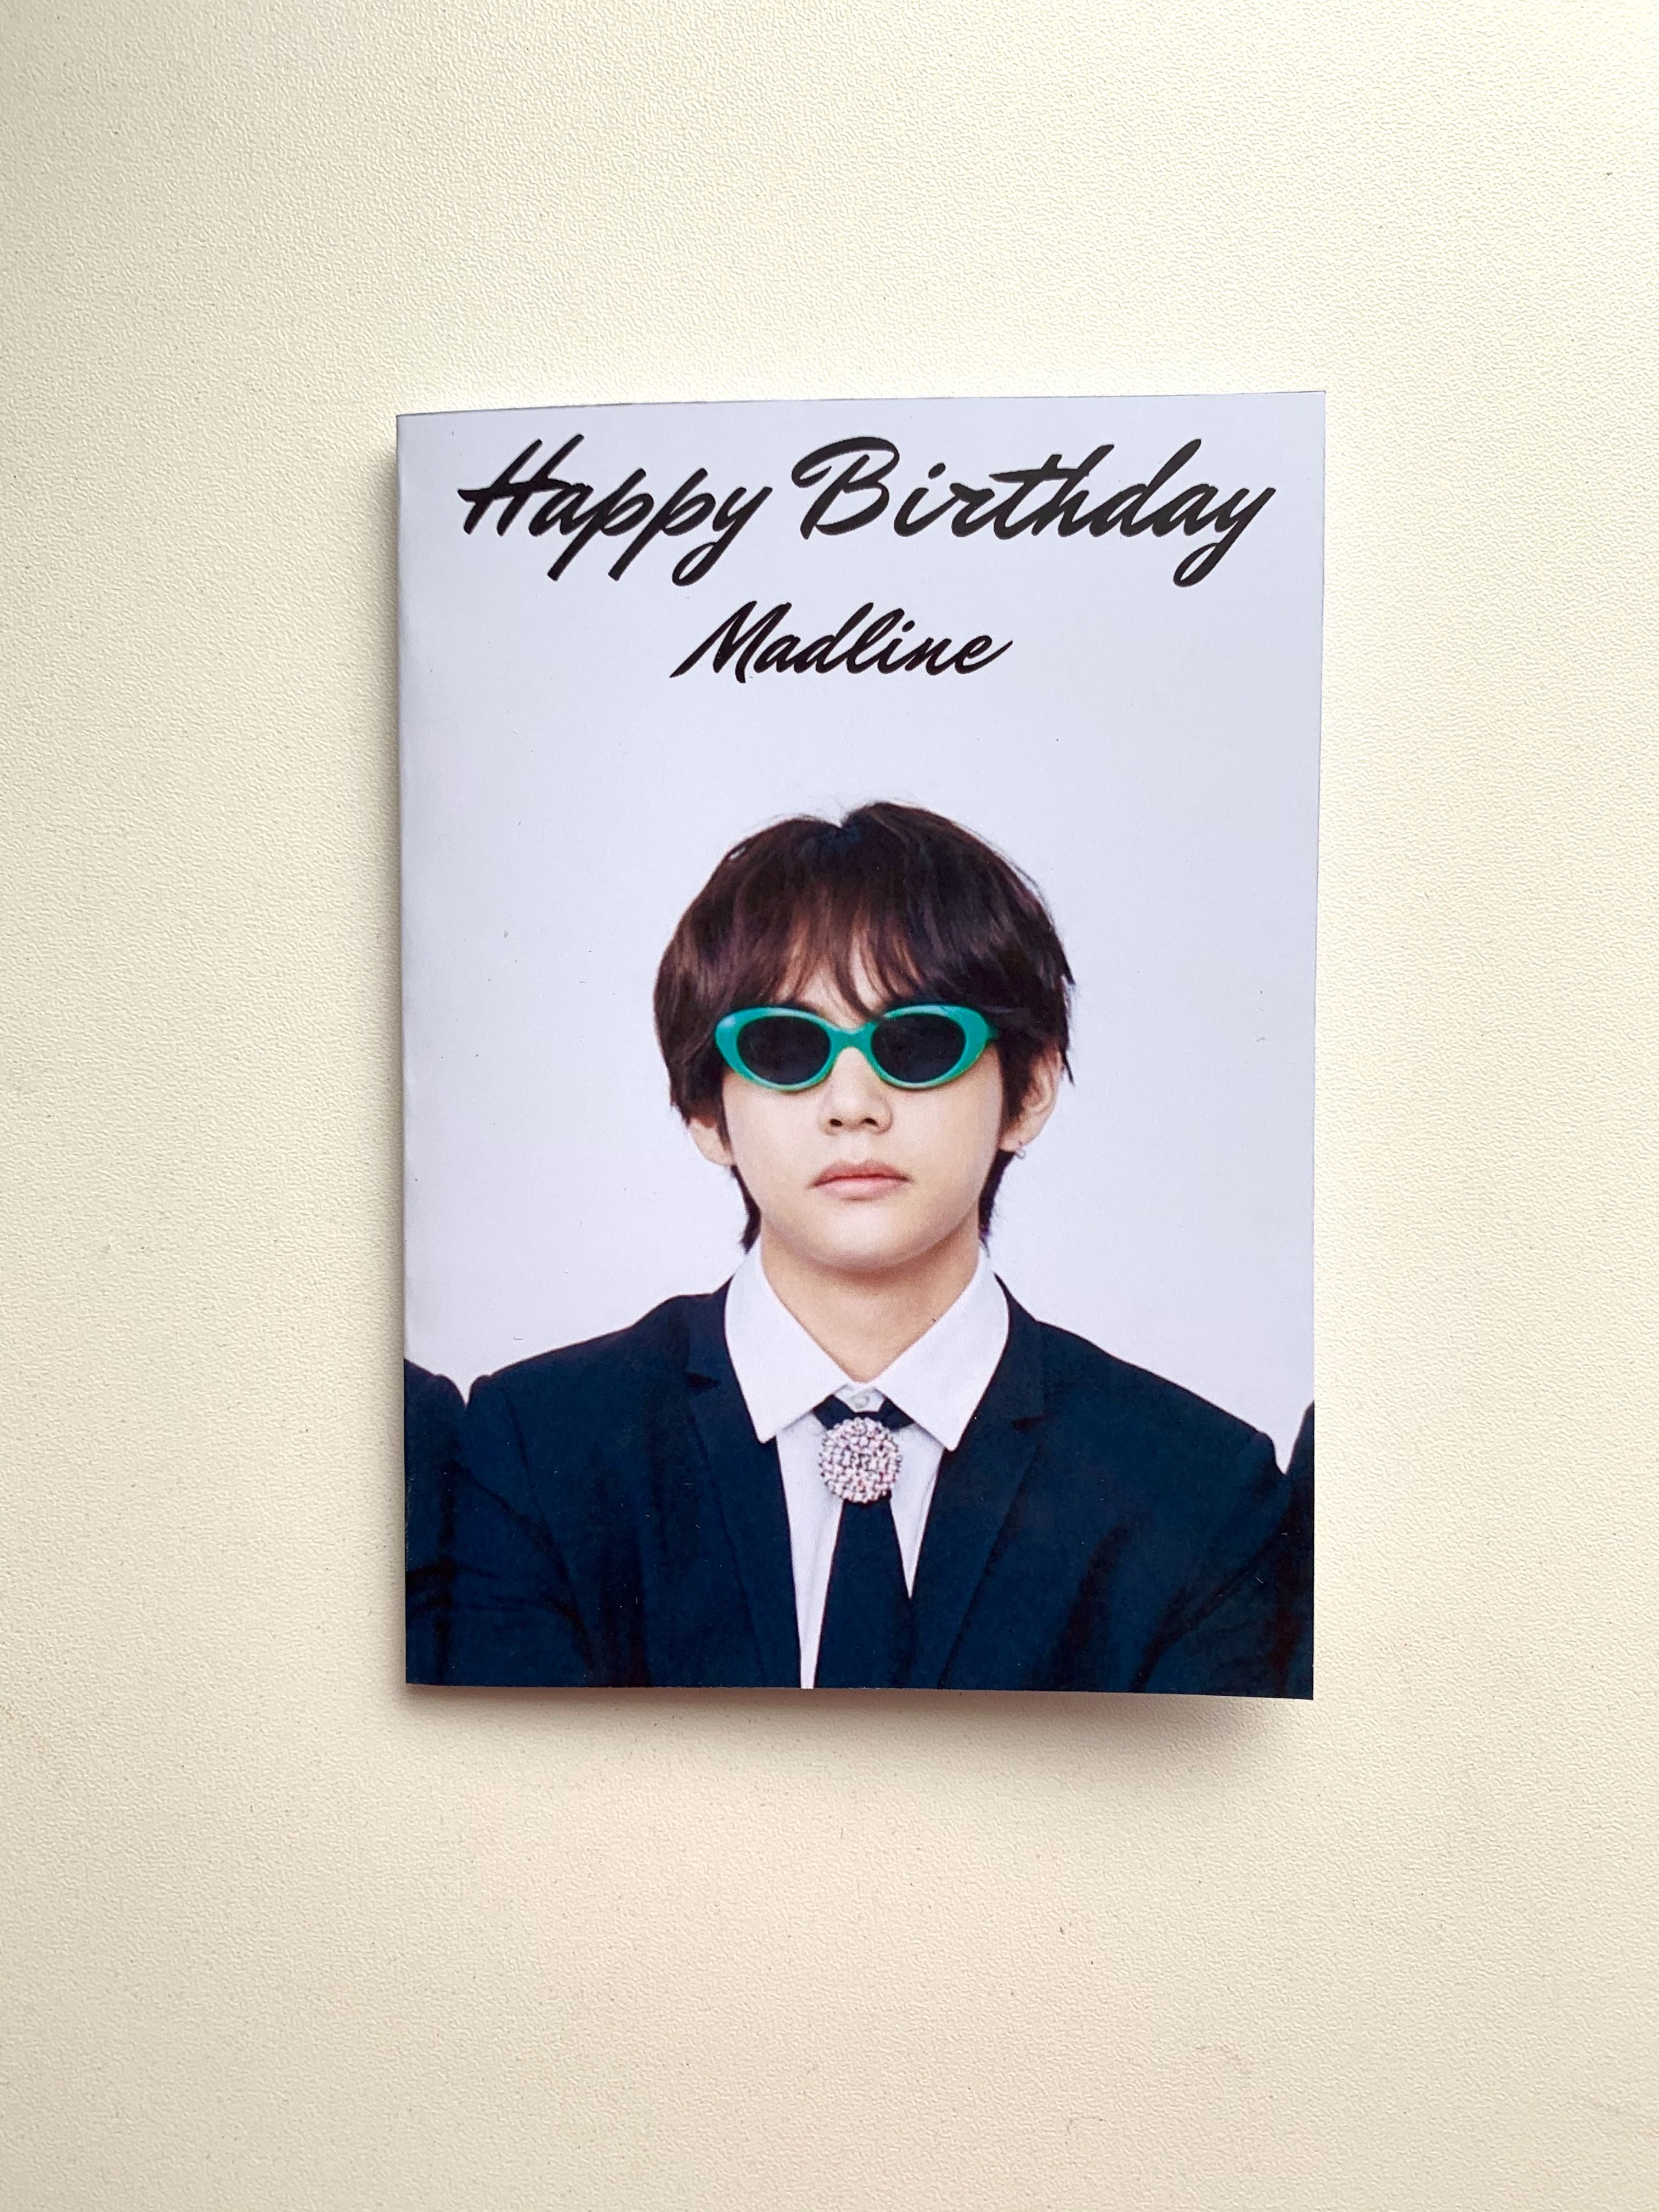 Taehyung Bts Customized Birthday Cards In 2021 Birthday Cards Journal Stickers Cute Stickers